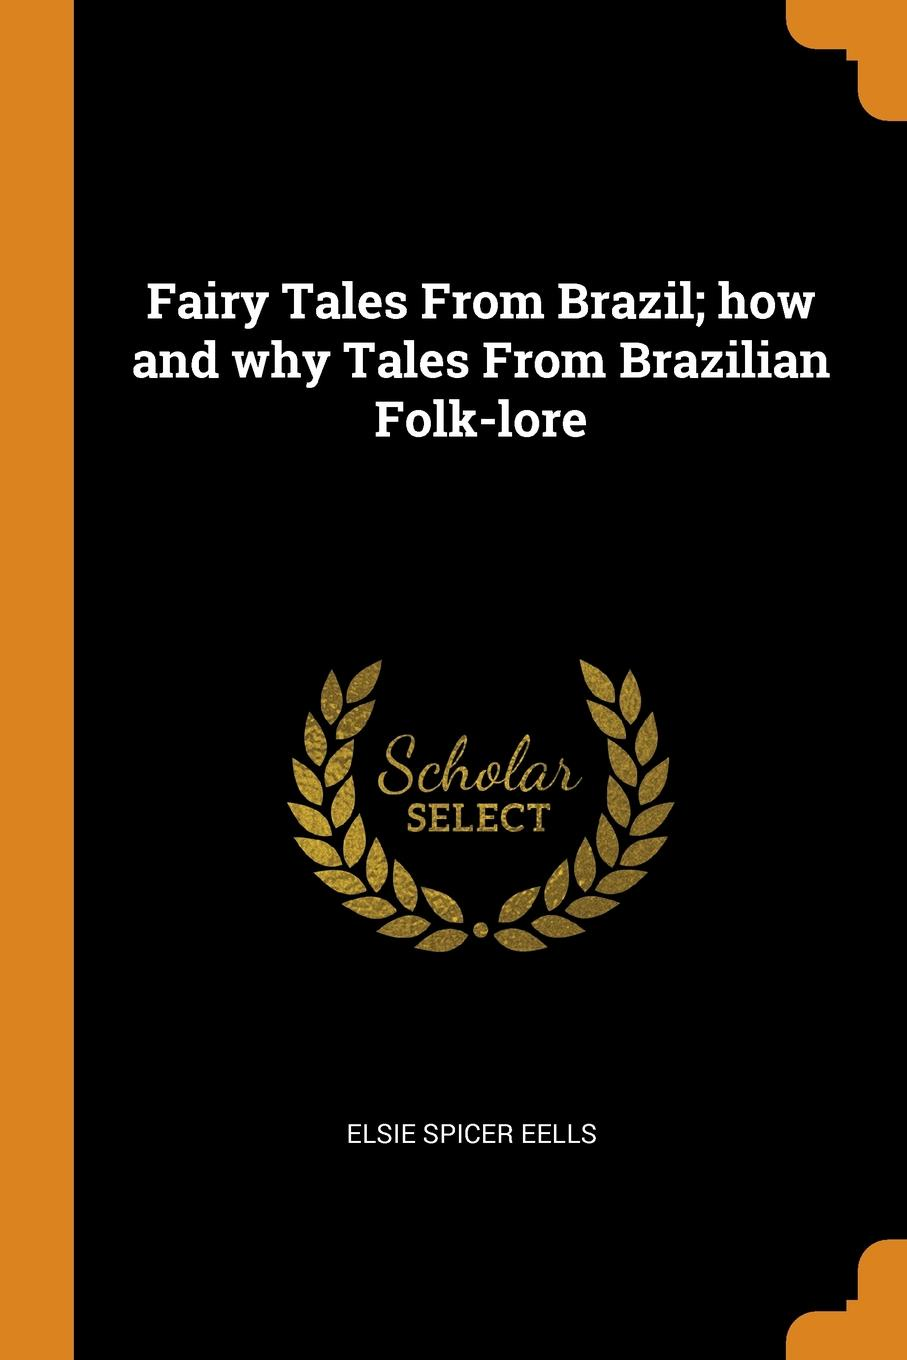 Elsie Spicer Eells Fairy Tales From Brazil; how and why Tales From Brazilian Folk-lore